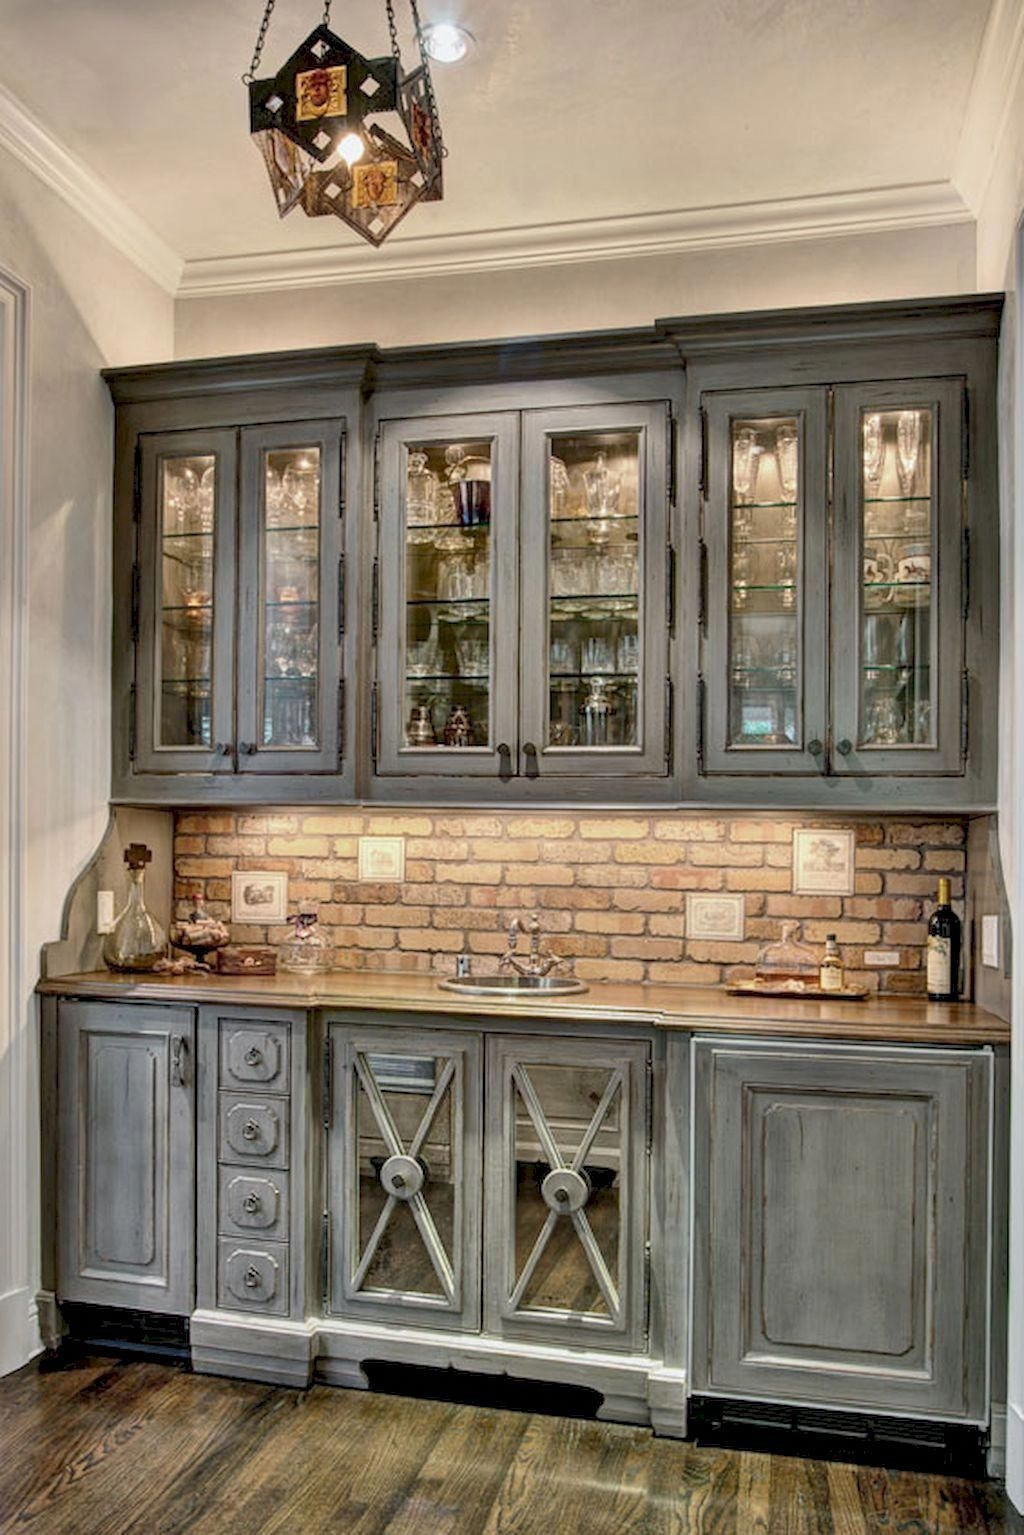 25 Ways To Style Grey Kitchen Cabinets In 2020 Rustic Farmhouse